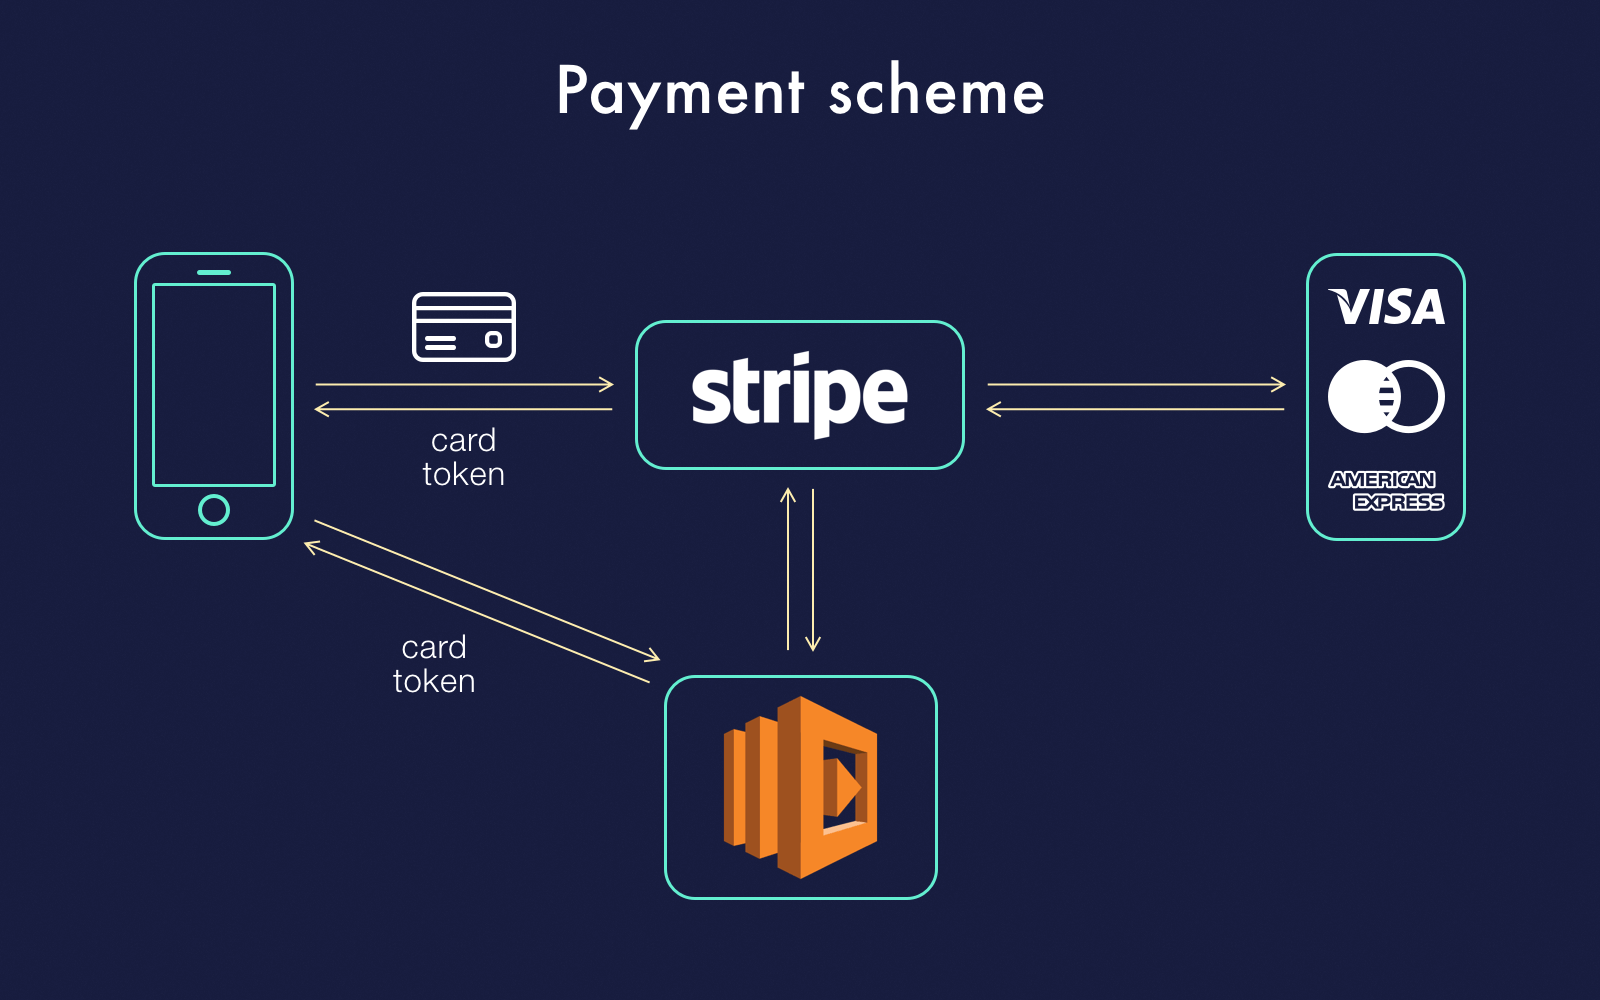 A scheme of simple payment process on Stripe